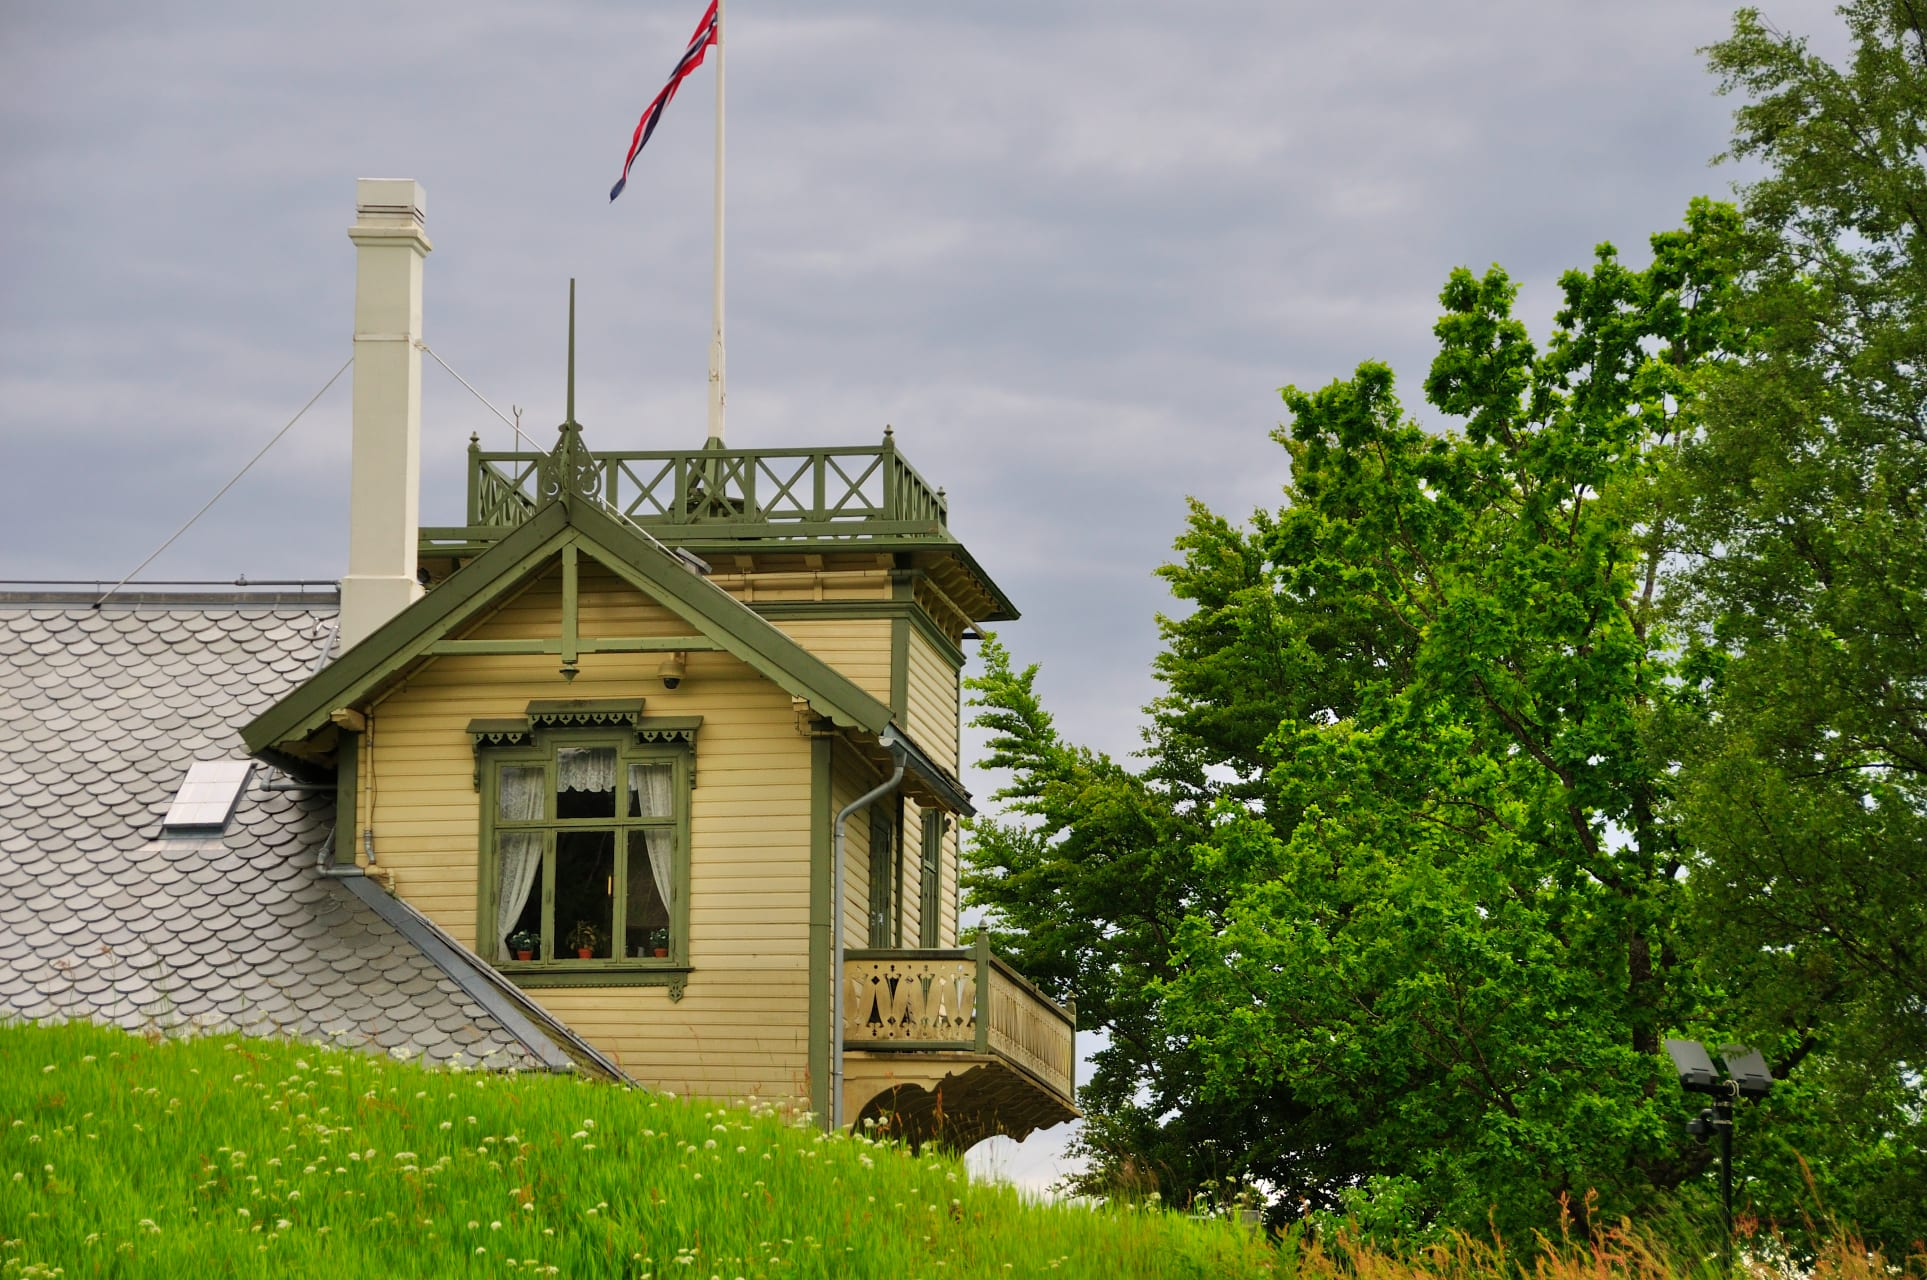 Bergen -  Edvard Grieg, Norway's Most Famous Pianist, and His Home at Troldhaugen